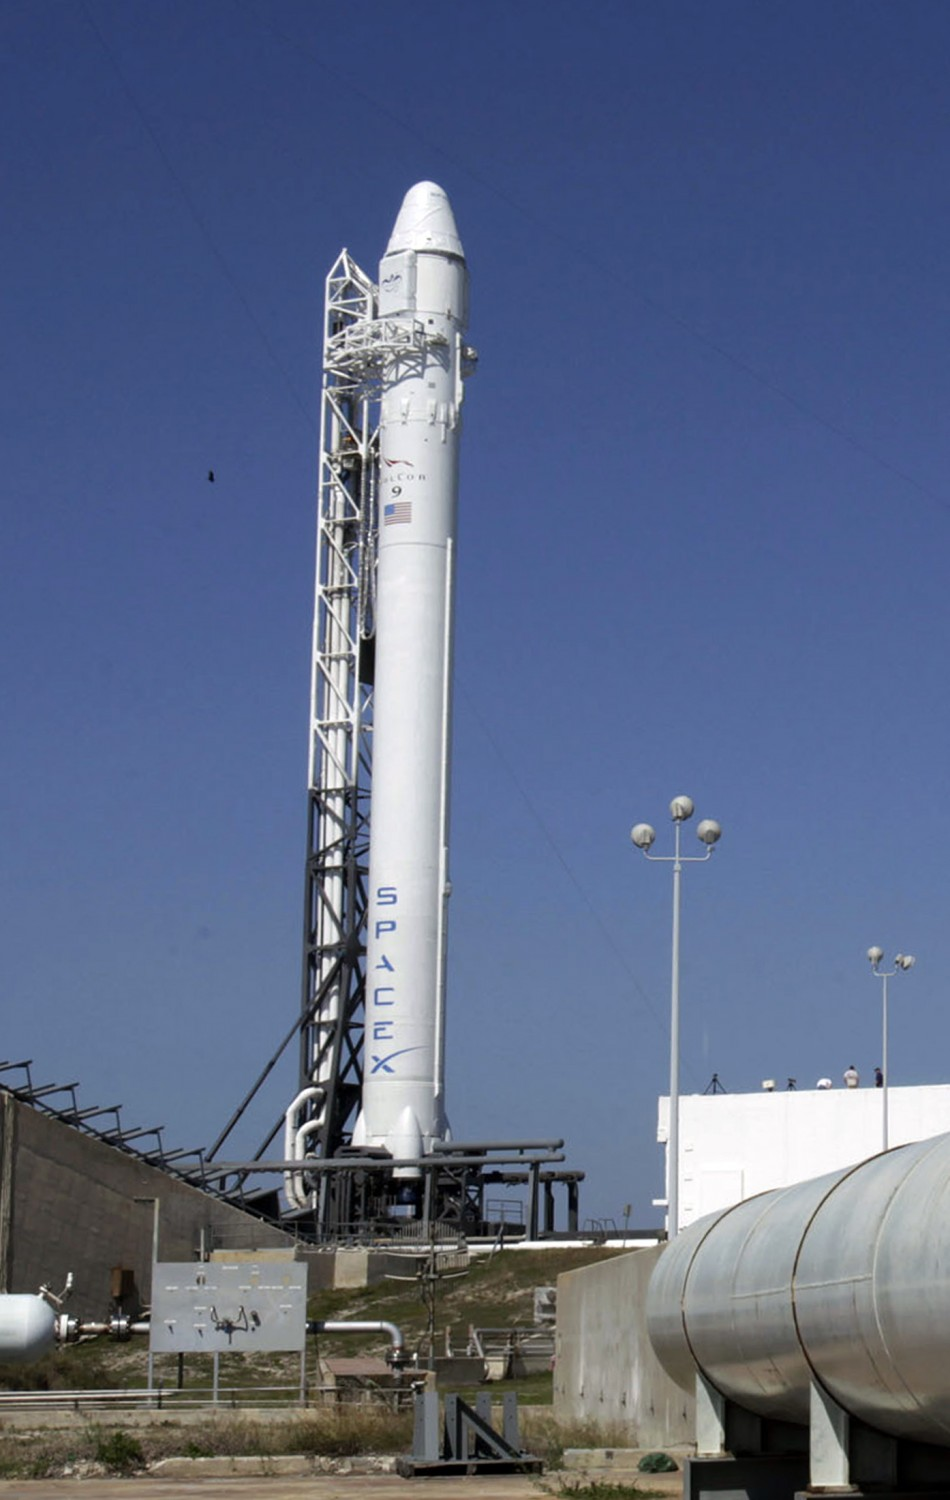 spacex may be launching next - 736×1162